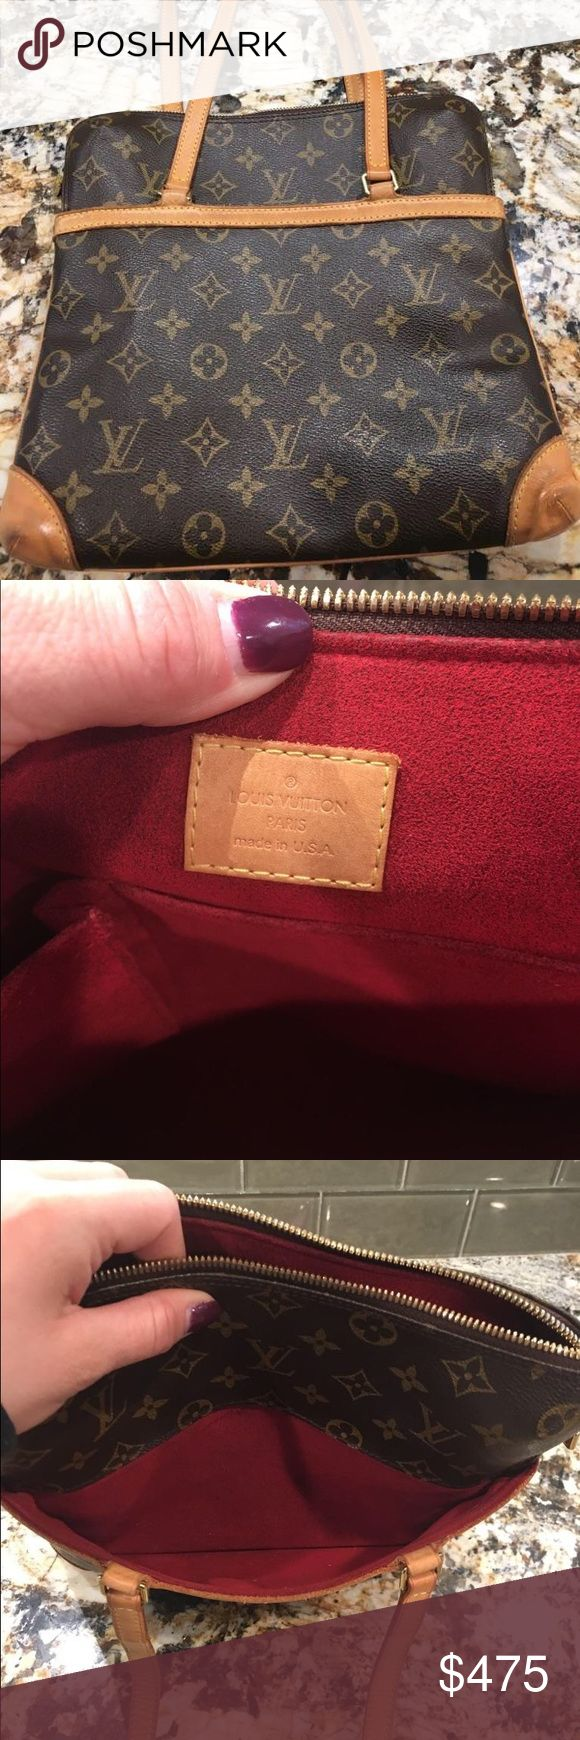 Authentic Louis Vuitton bag. Authentic Louis Vuitton shoulder bag in good used condition. Red lining.  With inside pockets. Louis Vuitton Bags Shoulder Bags